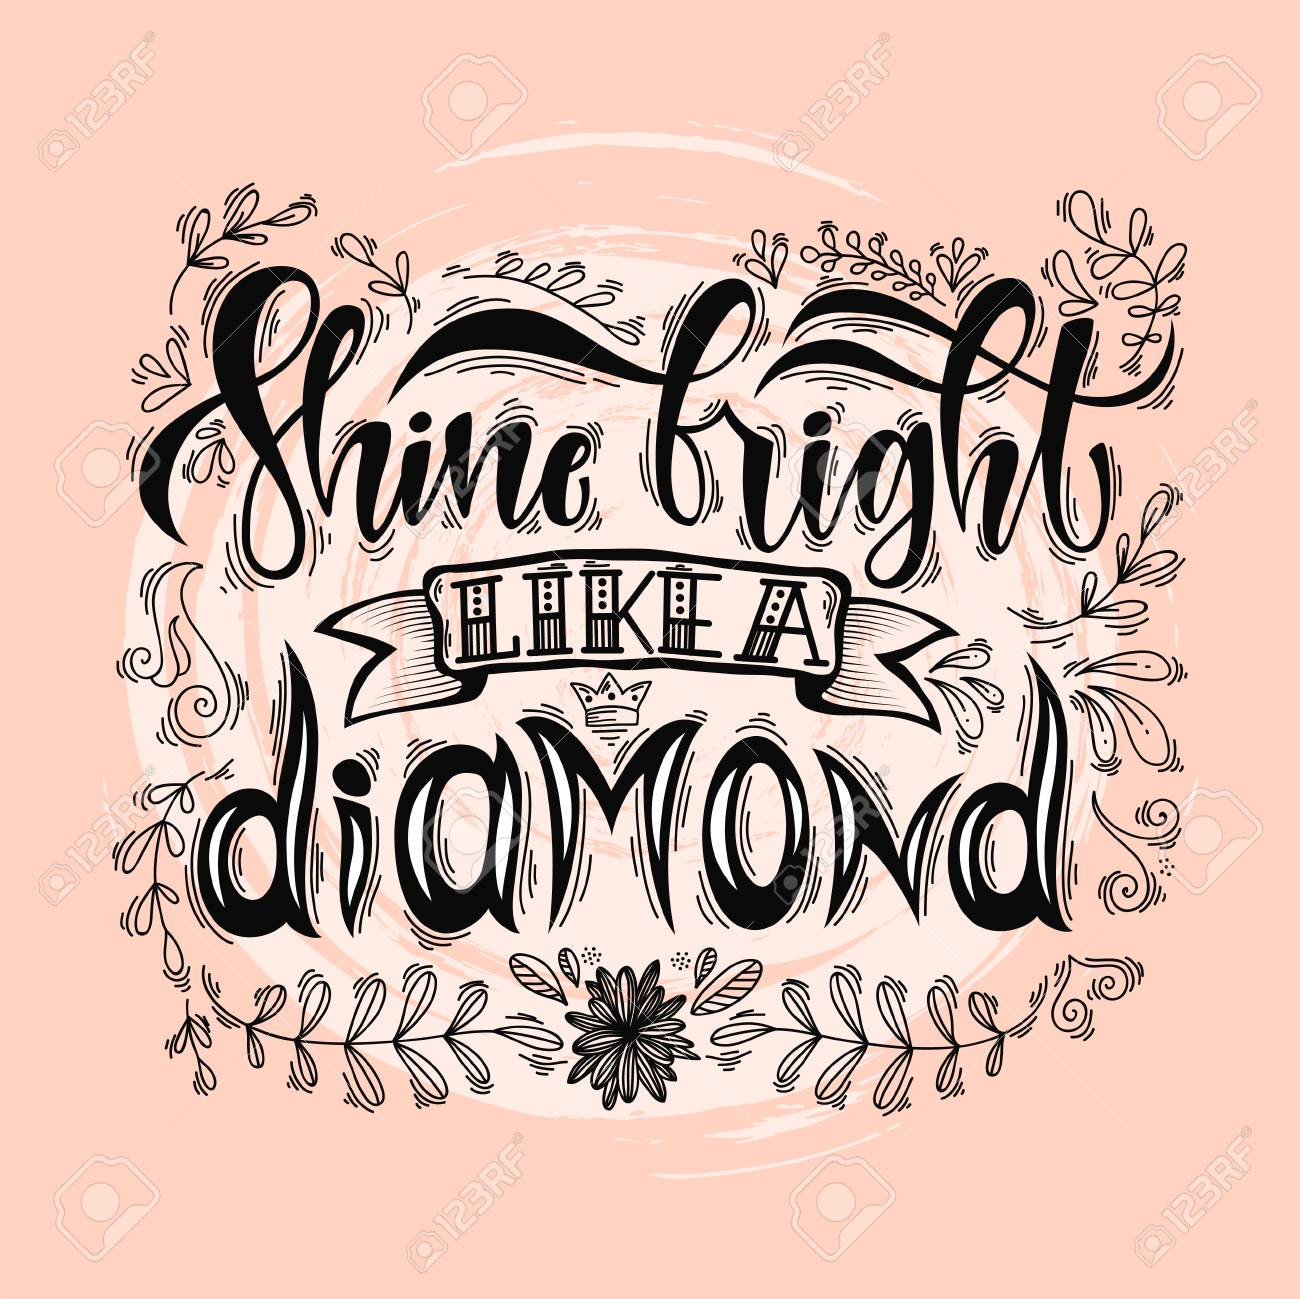 whitepink time pink royalty white bright quote to striped vector with shine diamond illustration a golden background